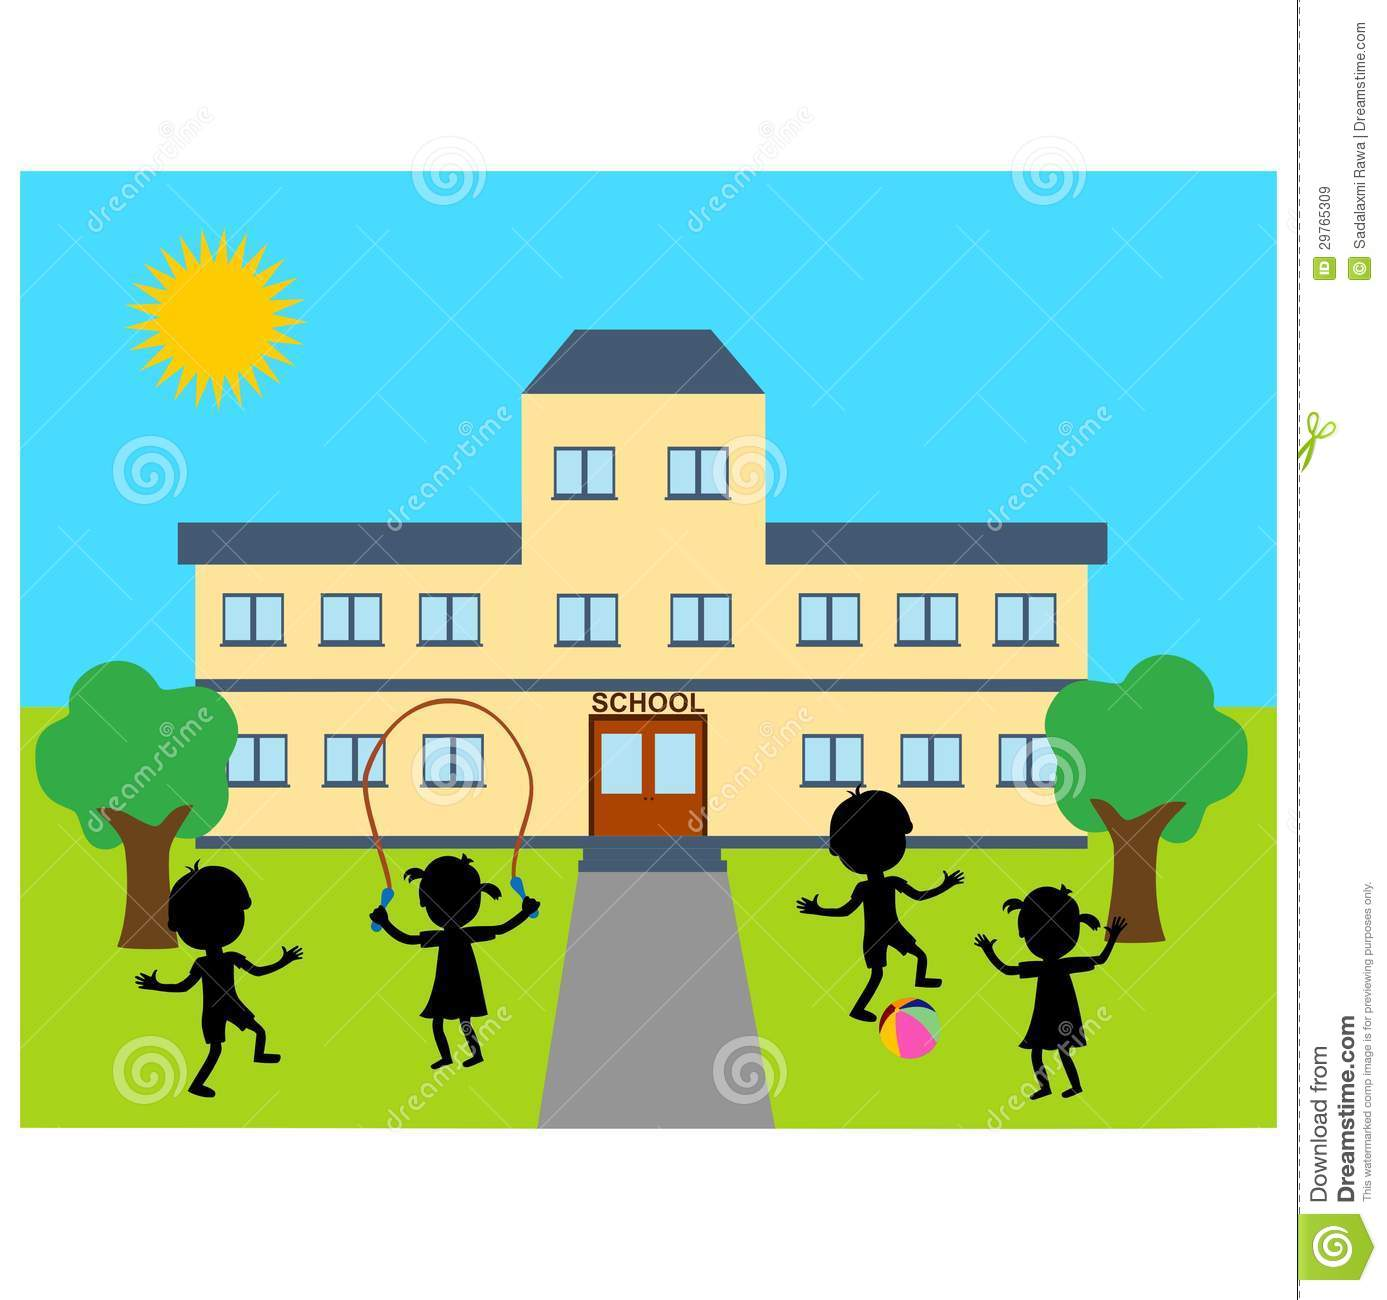 1387x1300 School Building Clipart Many Interesting Cliparts